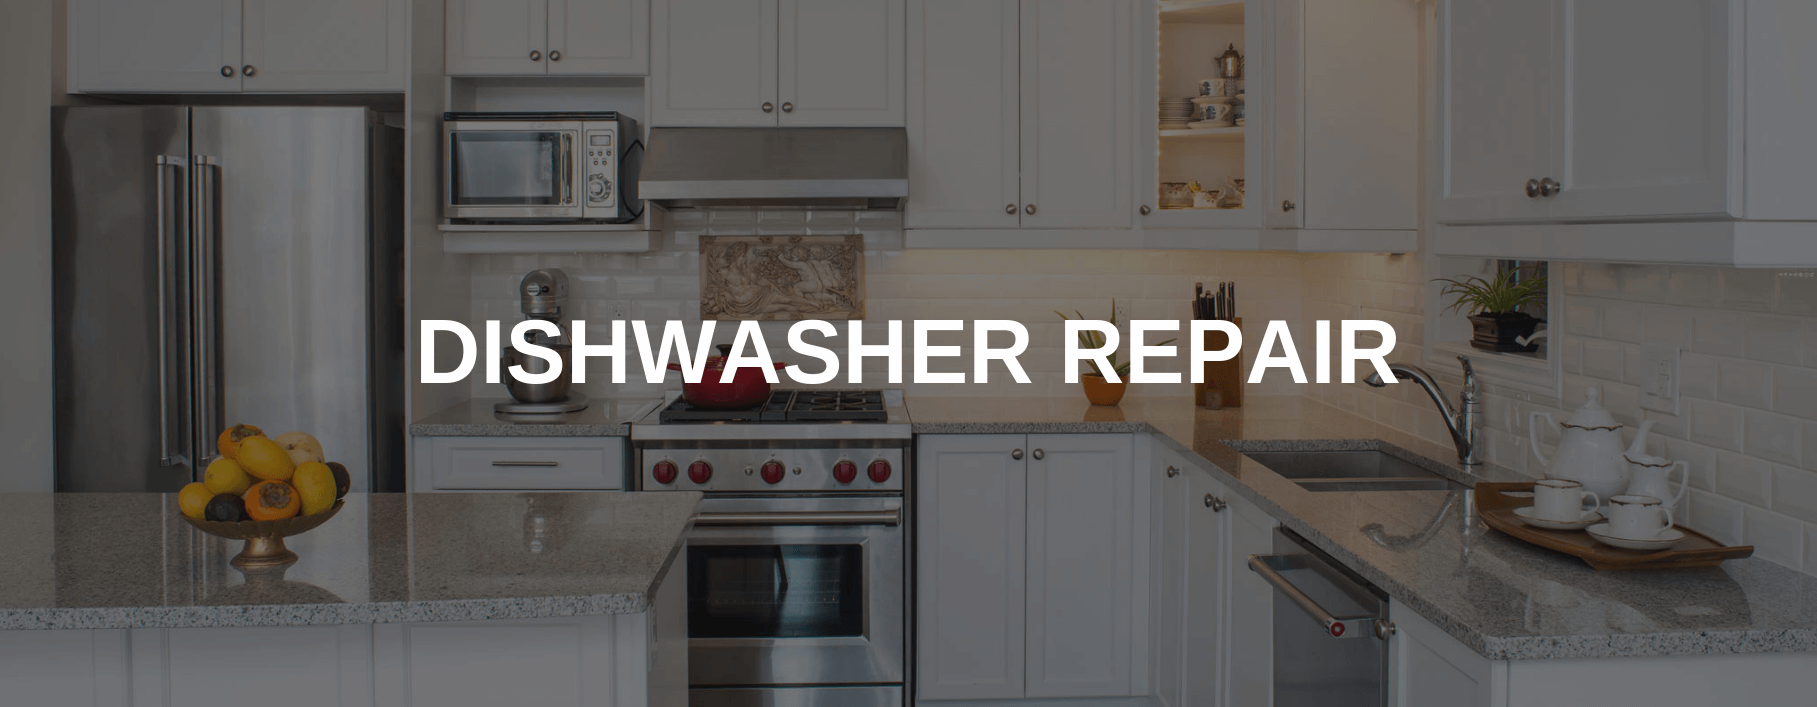 dishwasher repair hoboken